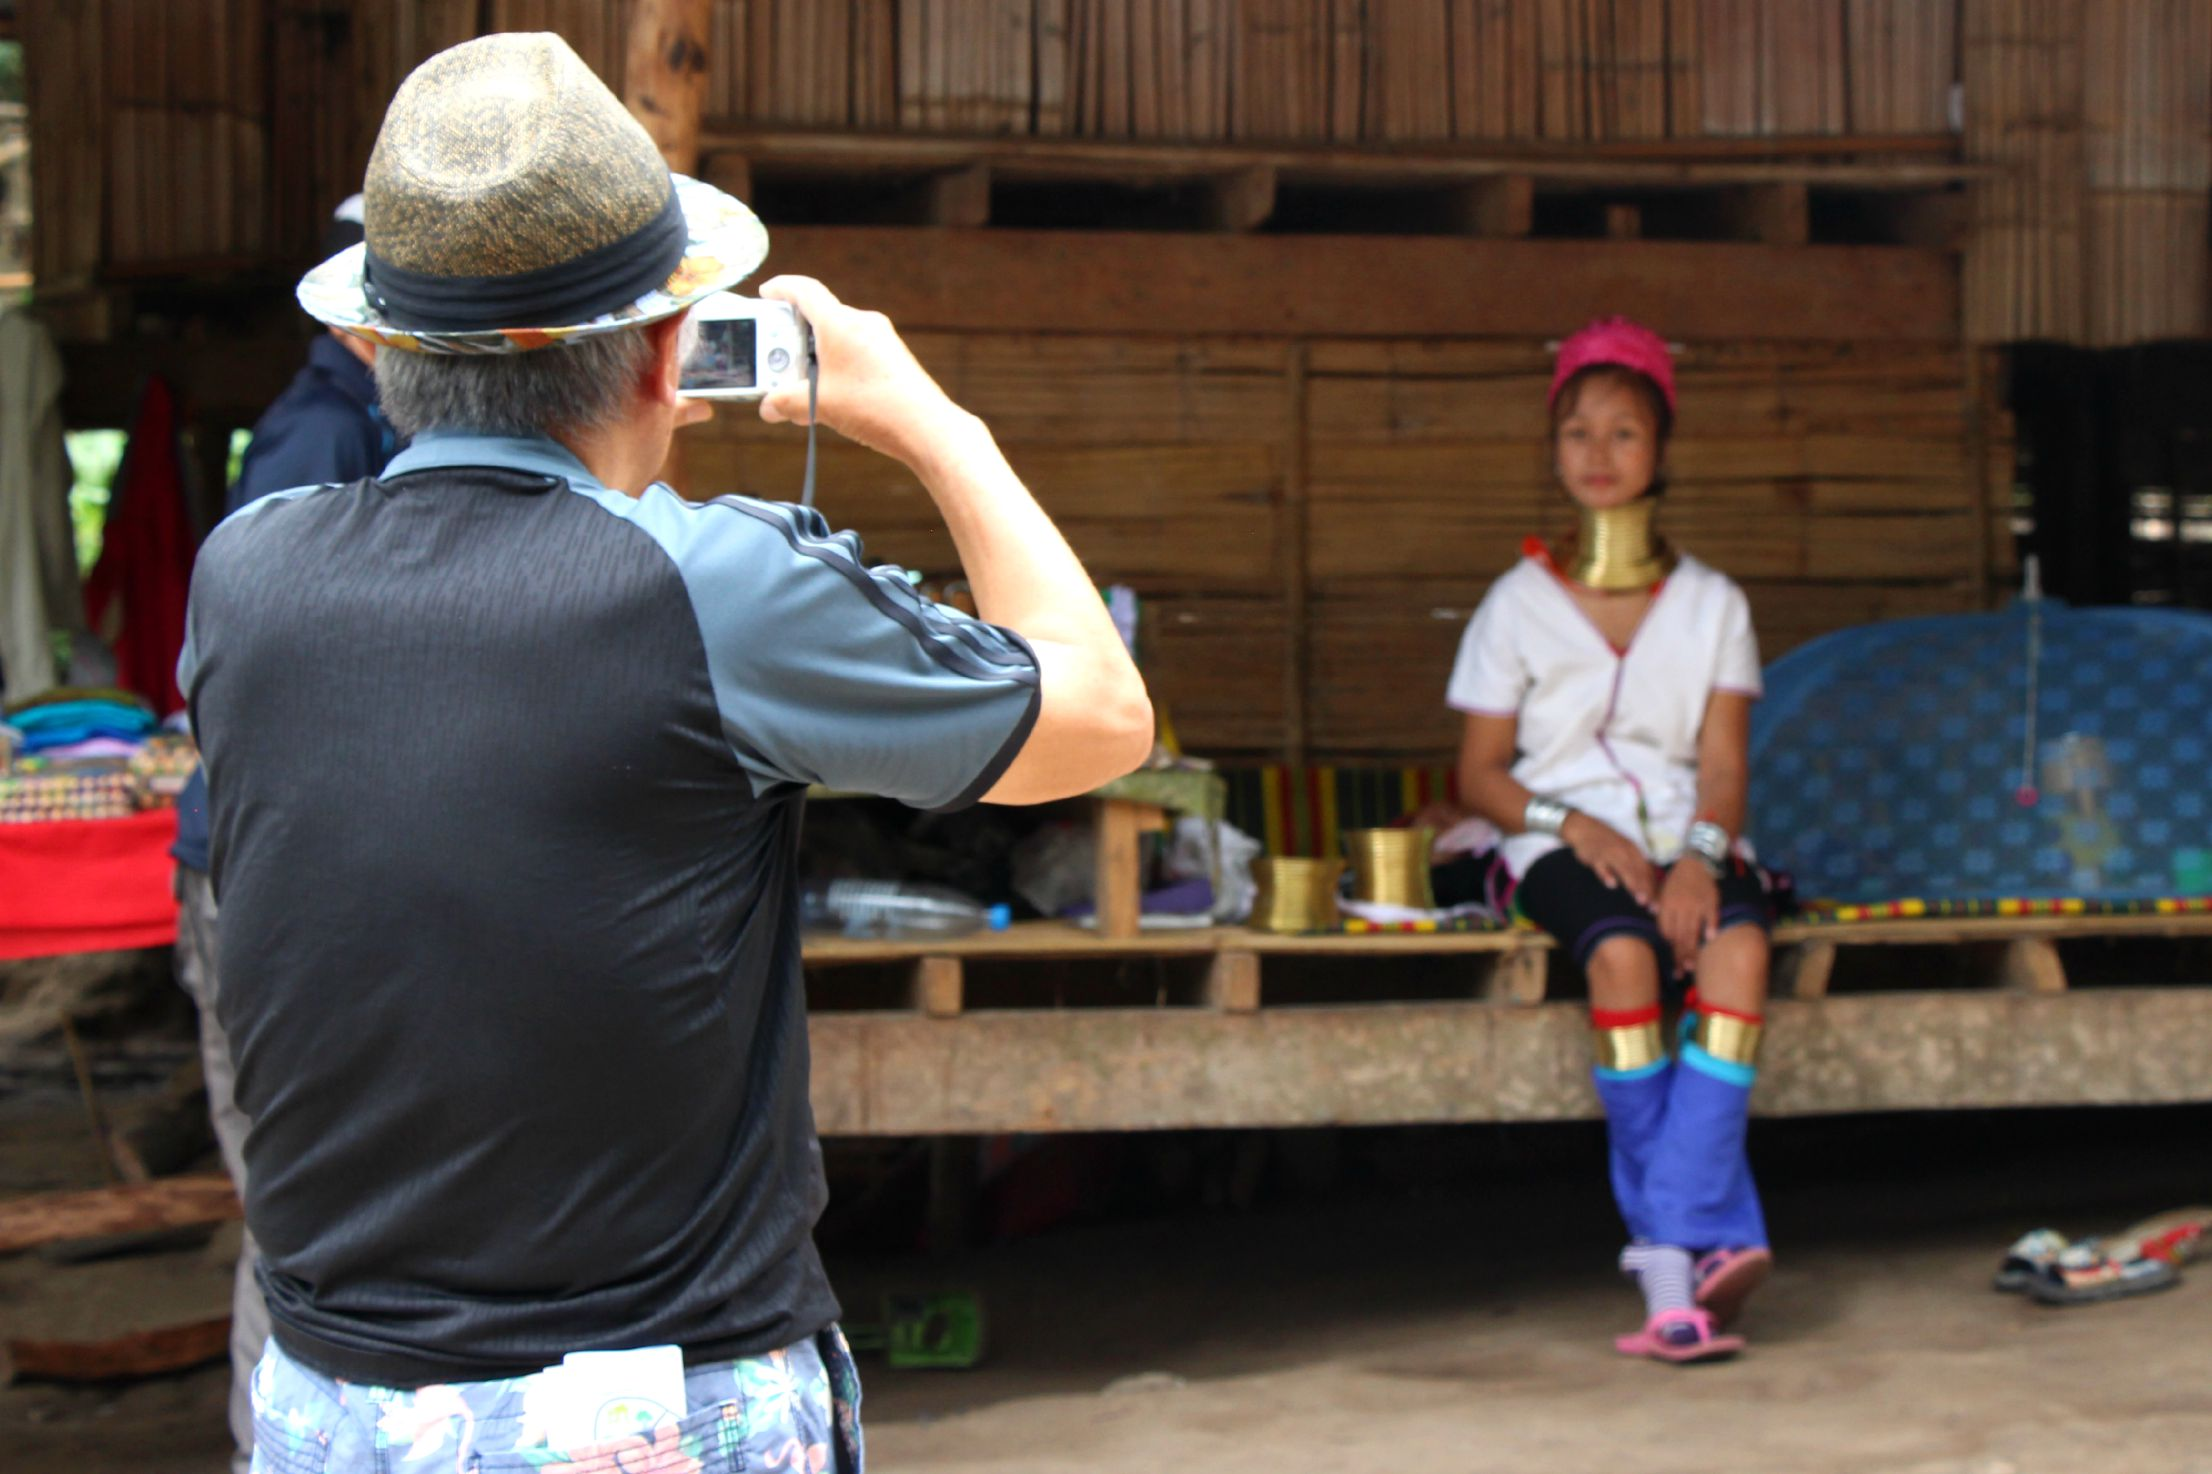 Tourists pay 500 Thai baht (US$16.50) to see the long-neck Padaung women. (PHOTO: Melanie Keyte).